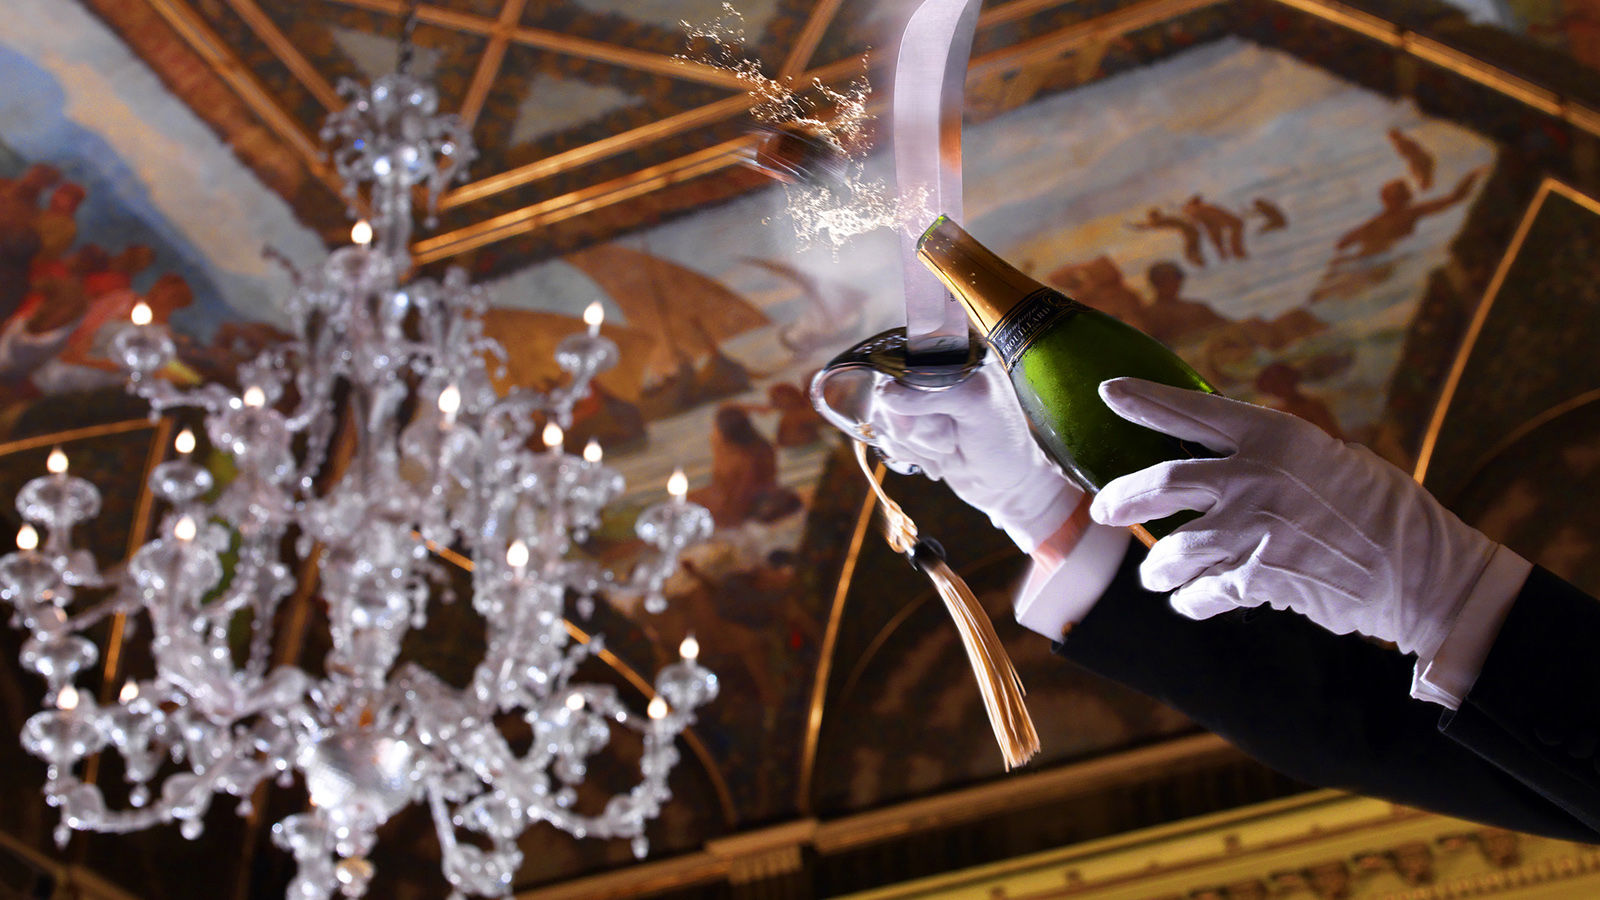 The St. Regis Rome Champagne Sabering